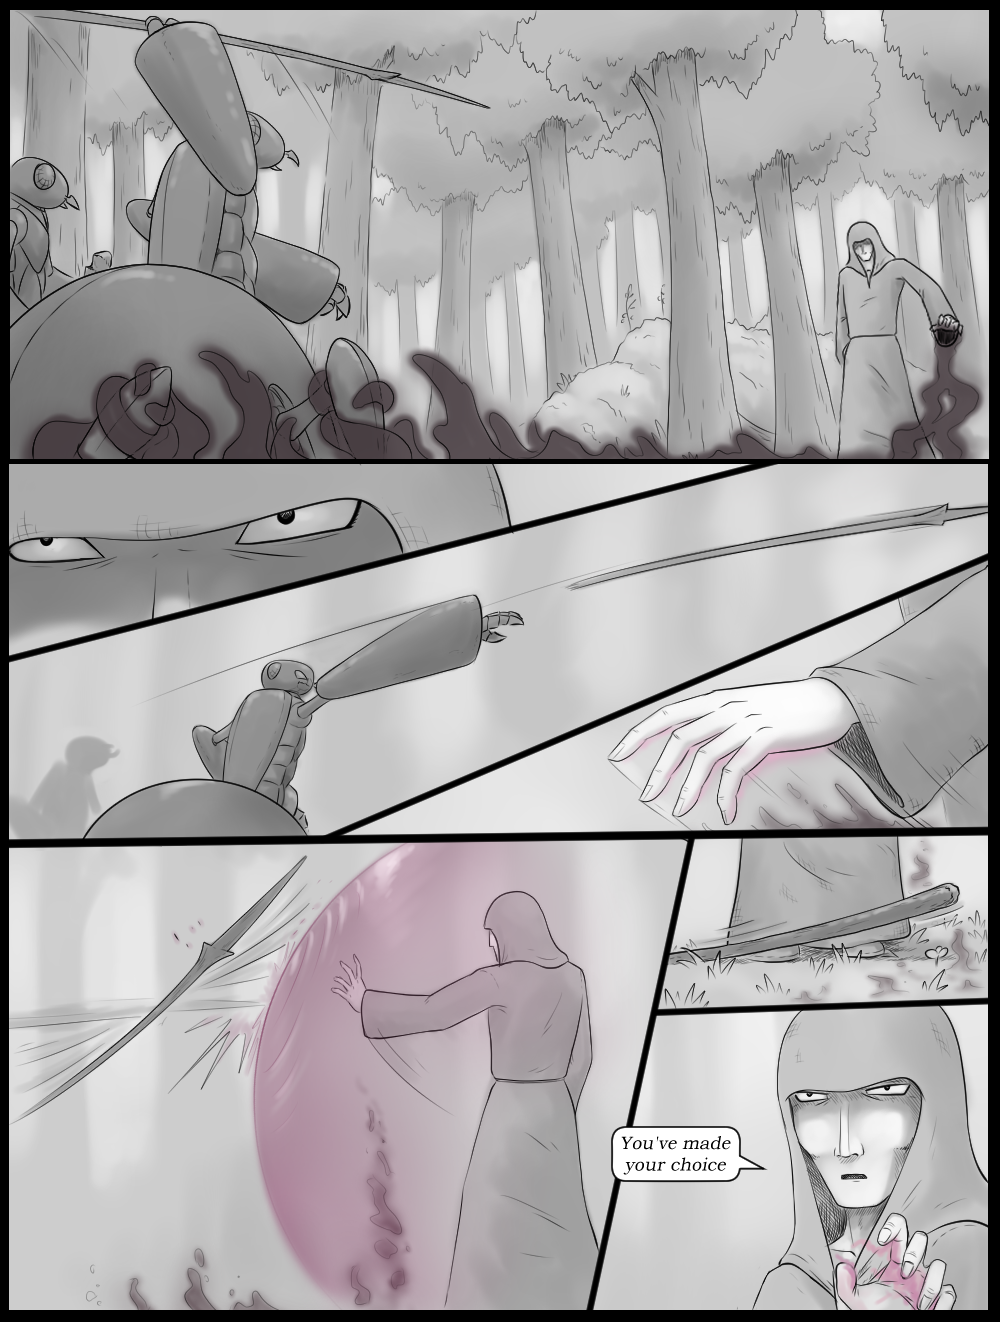 Page 112 - Their Choice